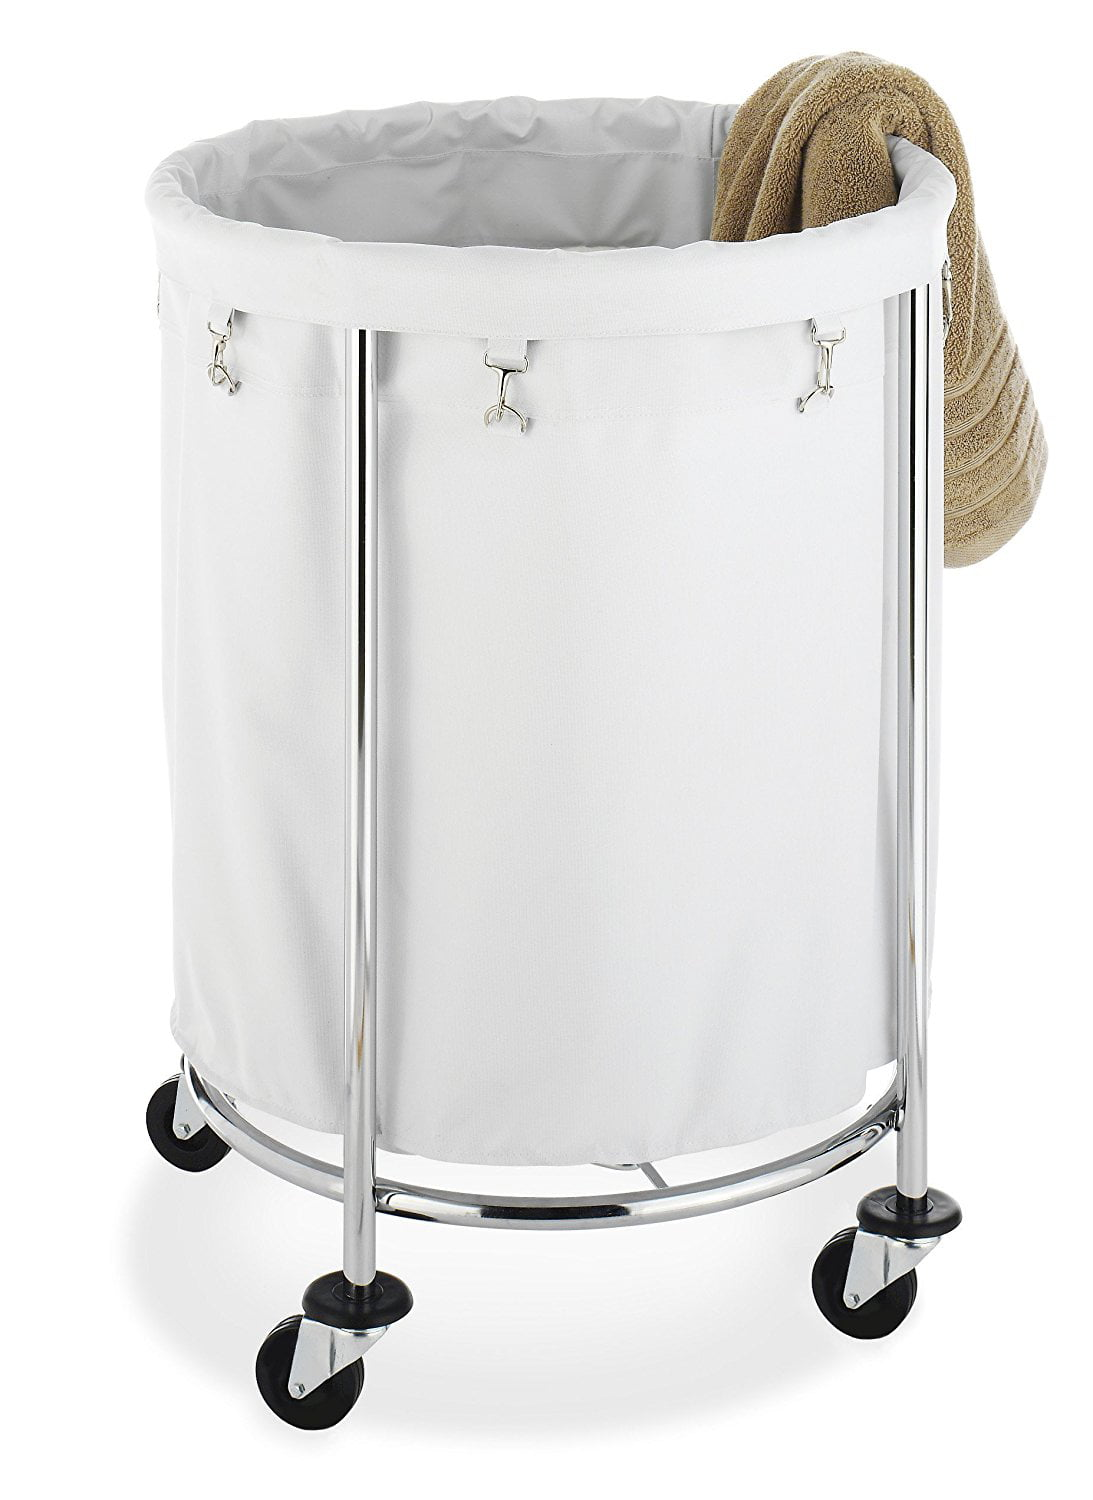 Whitmor Round Commercial Hamper with Wheels White & Chrome by Whitmor